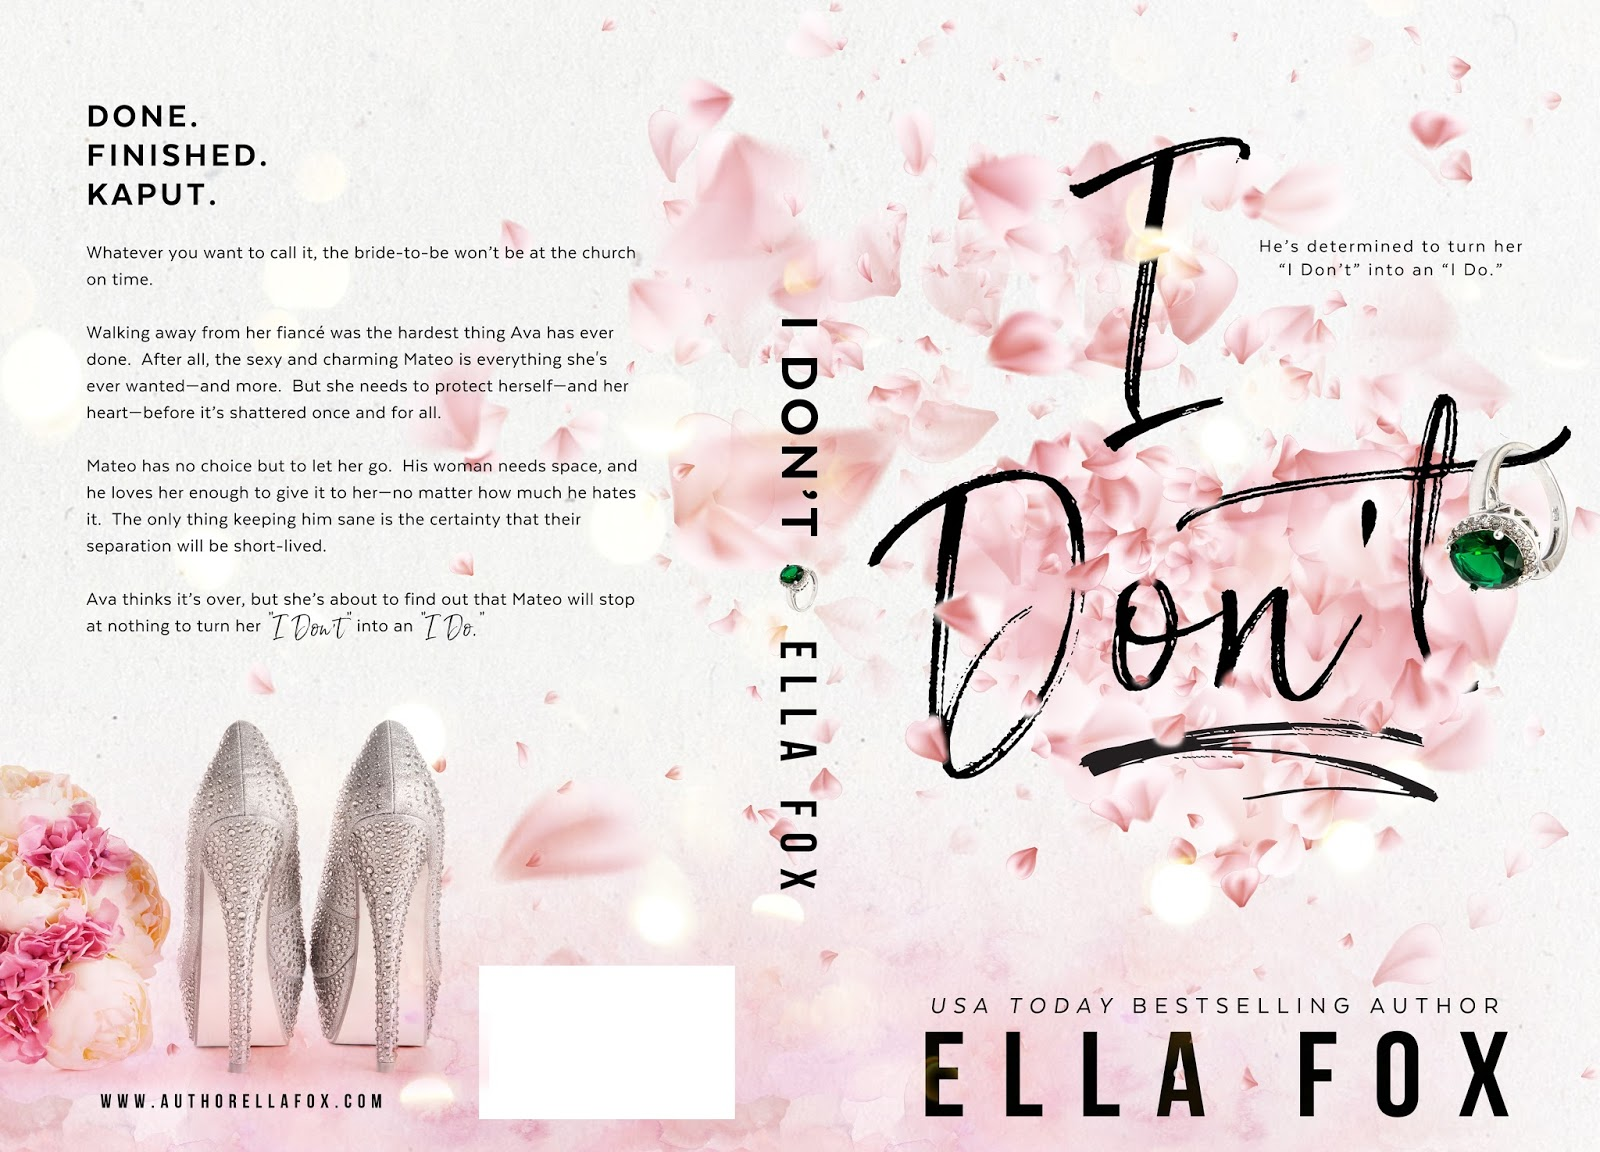 It's a Cover Reveal: I Don't by Ella Fox | The Never Ending